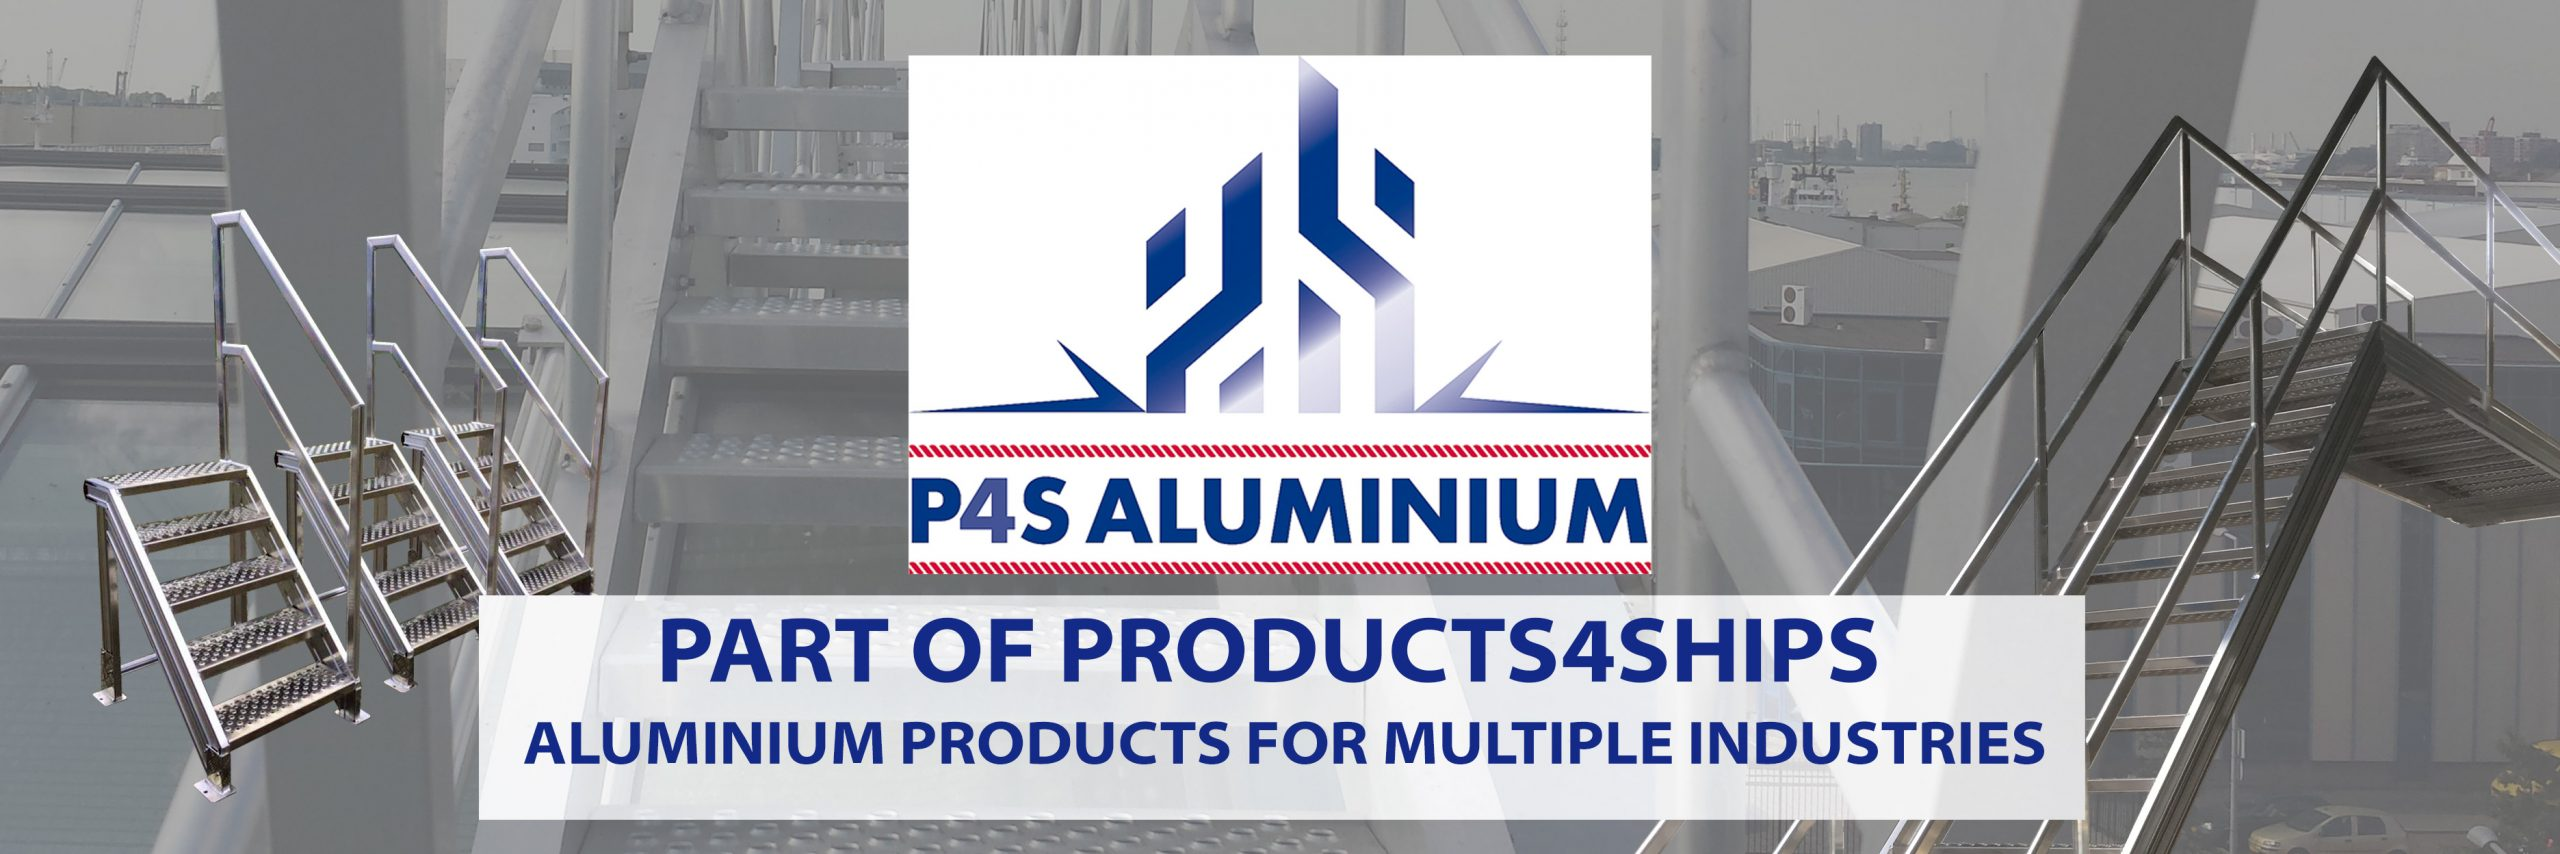 P4S Aluminium products